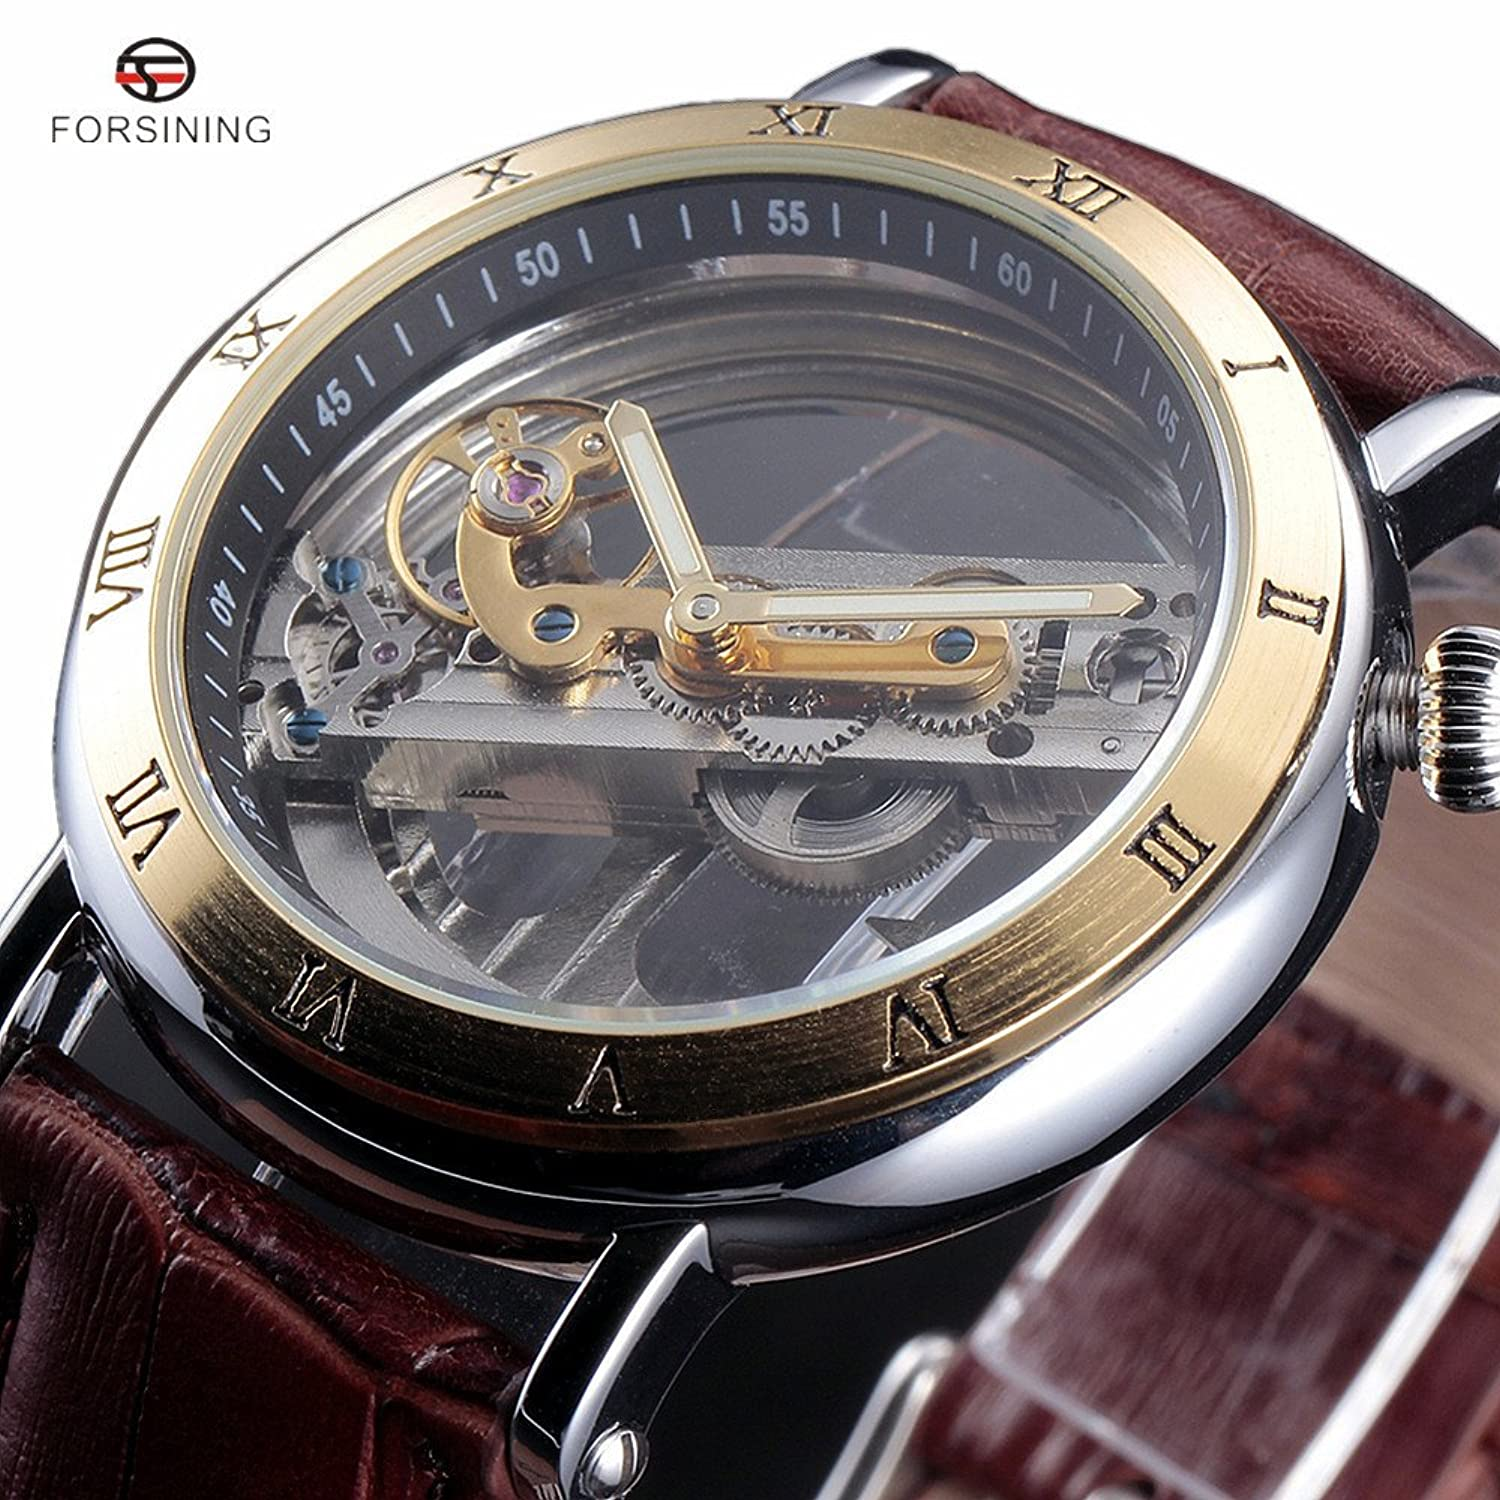 Amazon.com: FORSINING Watches Men Luxury Roma Case Transparent Skeleton Automatic Mechanical Leather Strap Antique Wristwatch: Watches